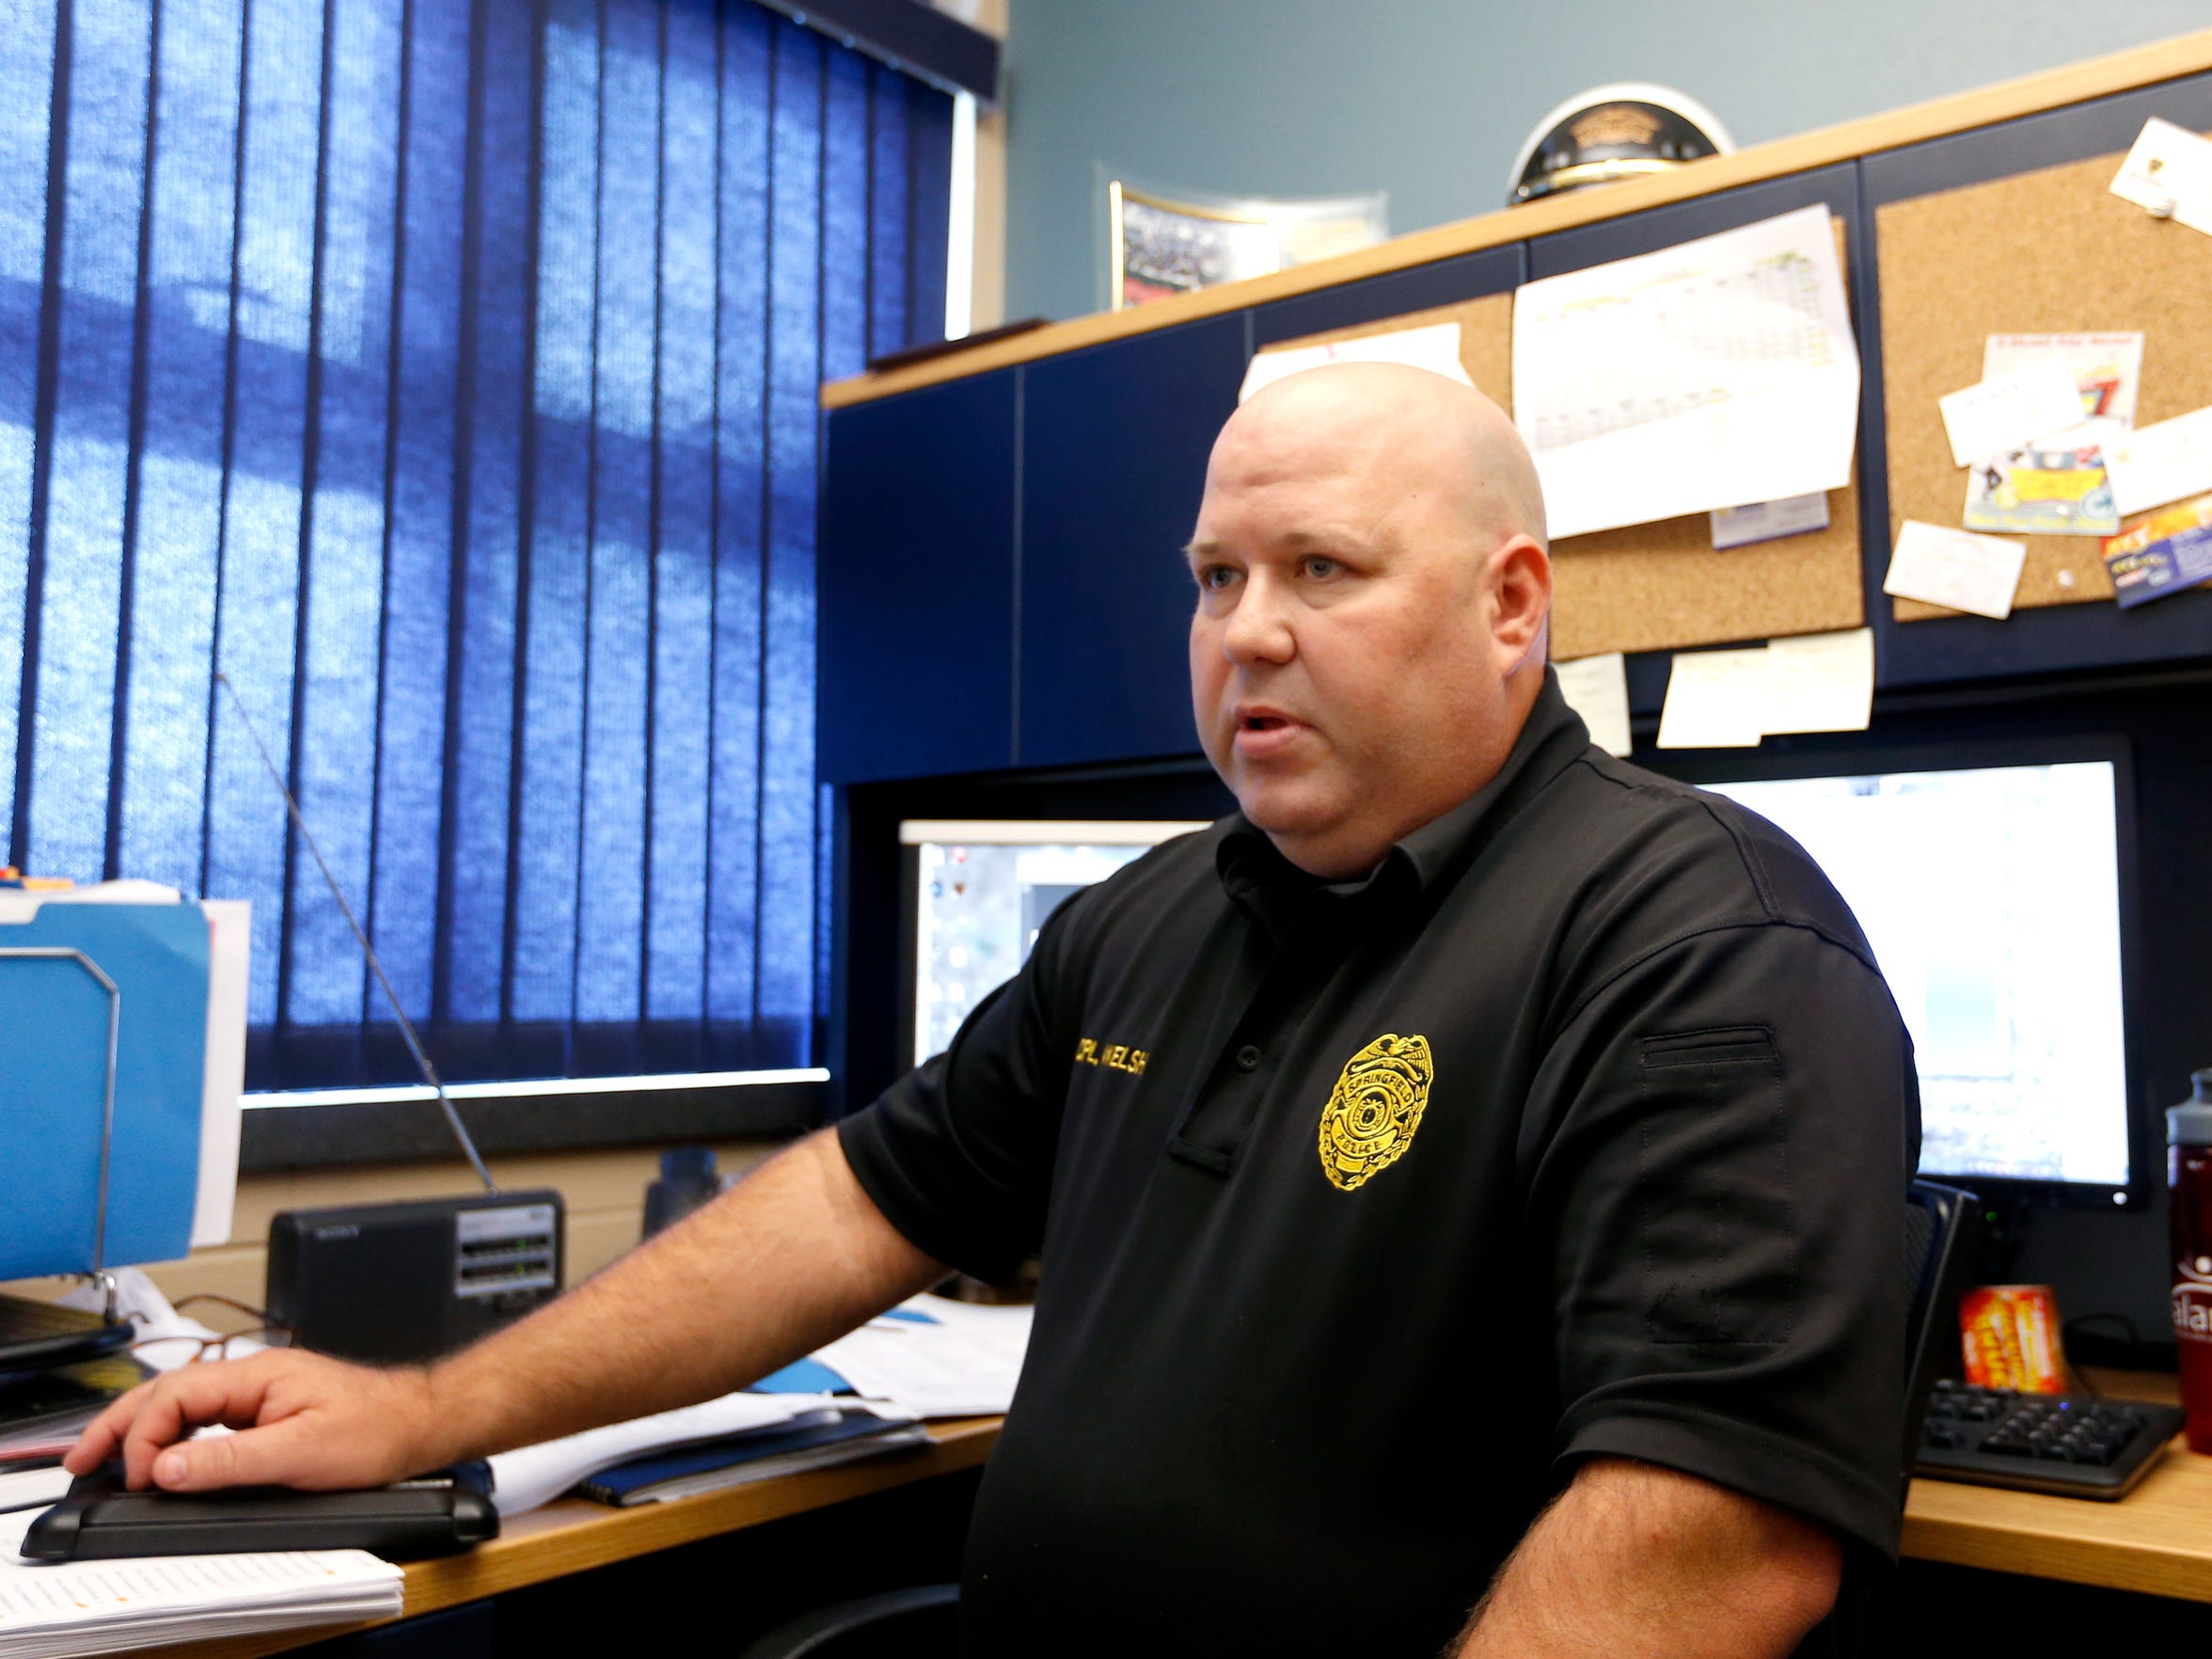 Springfield Police Corporal Chris Welsh